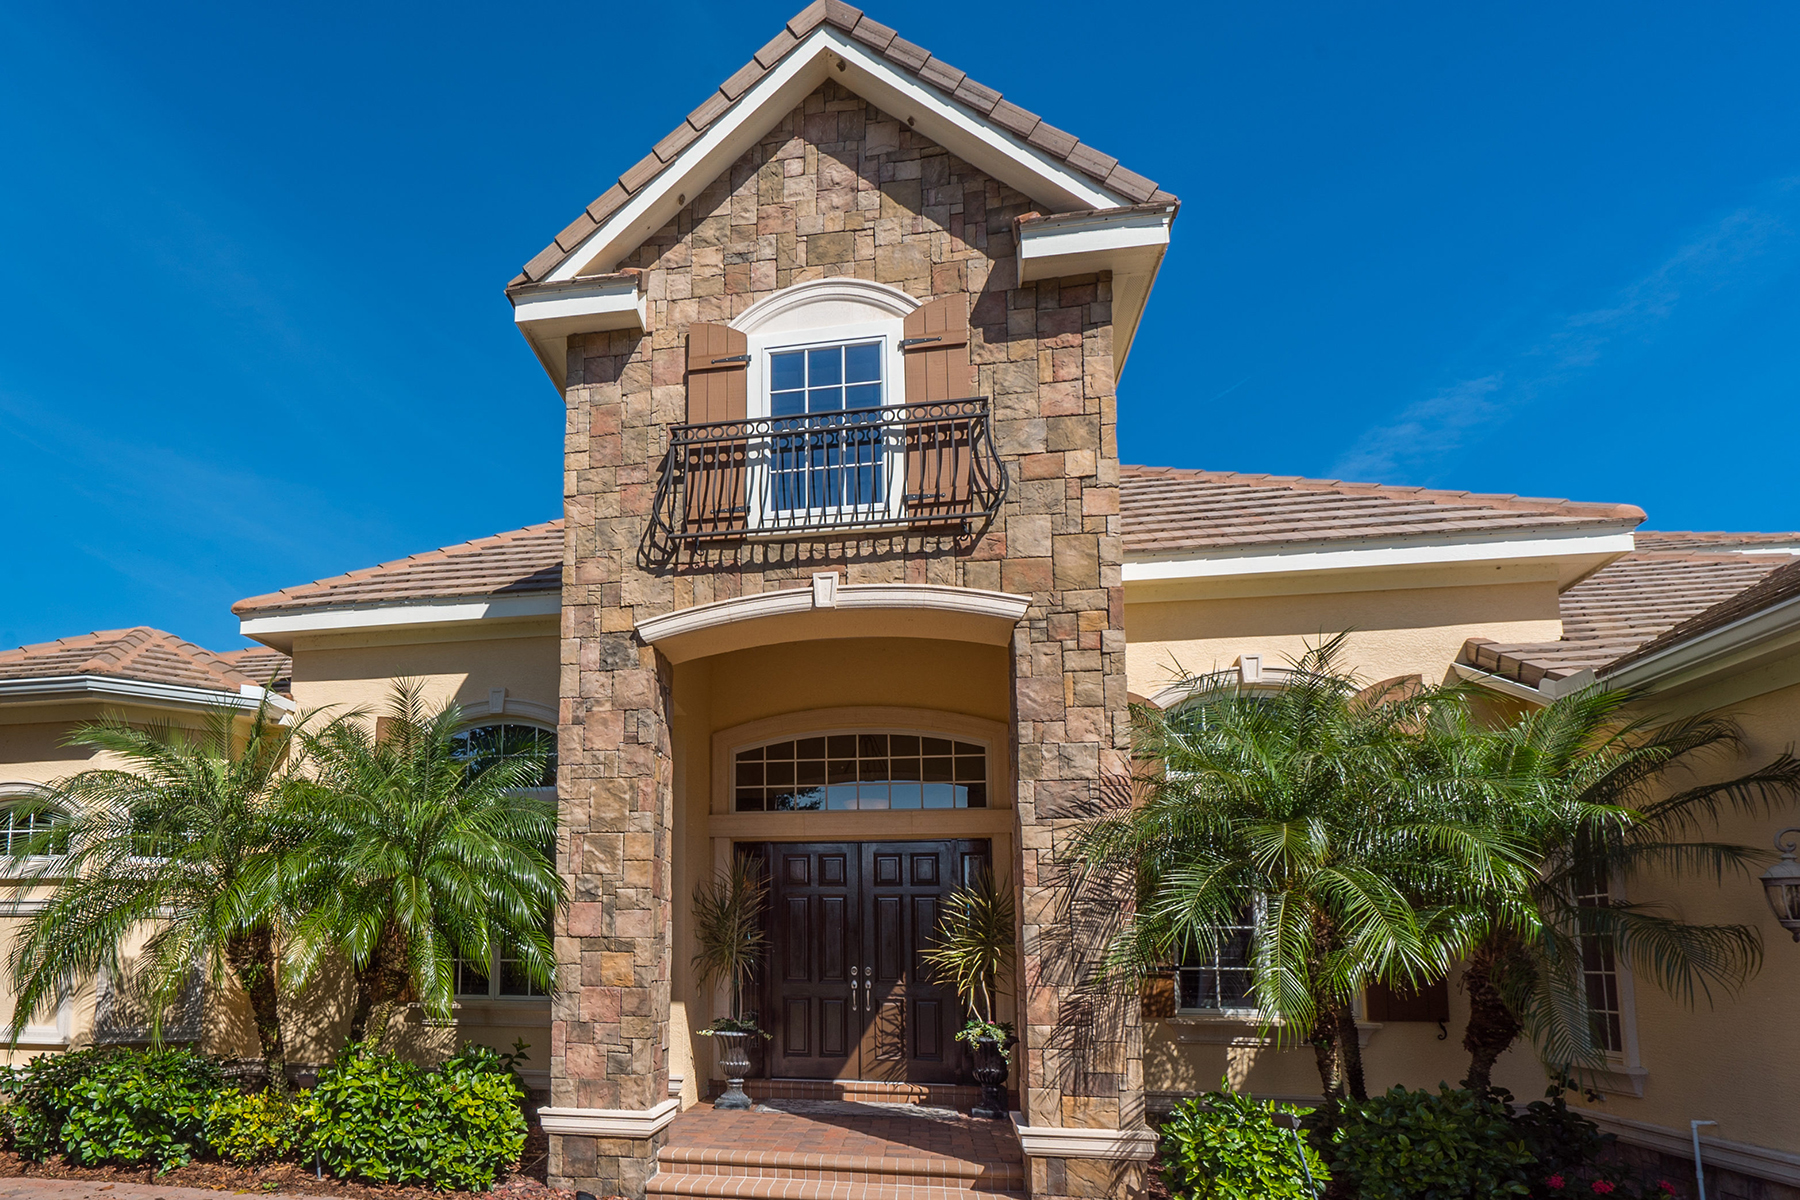 Single Family Home for Sale at FOUNDERS CLUB 4097 Founders Club Dr Sarasota, Florida 34240 United States